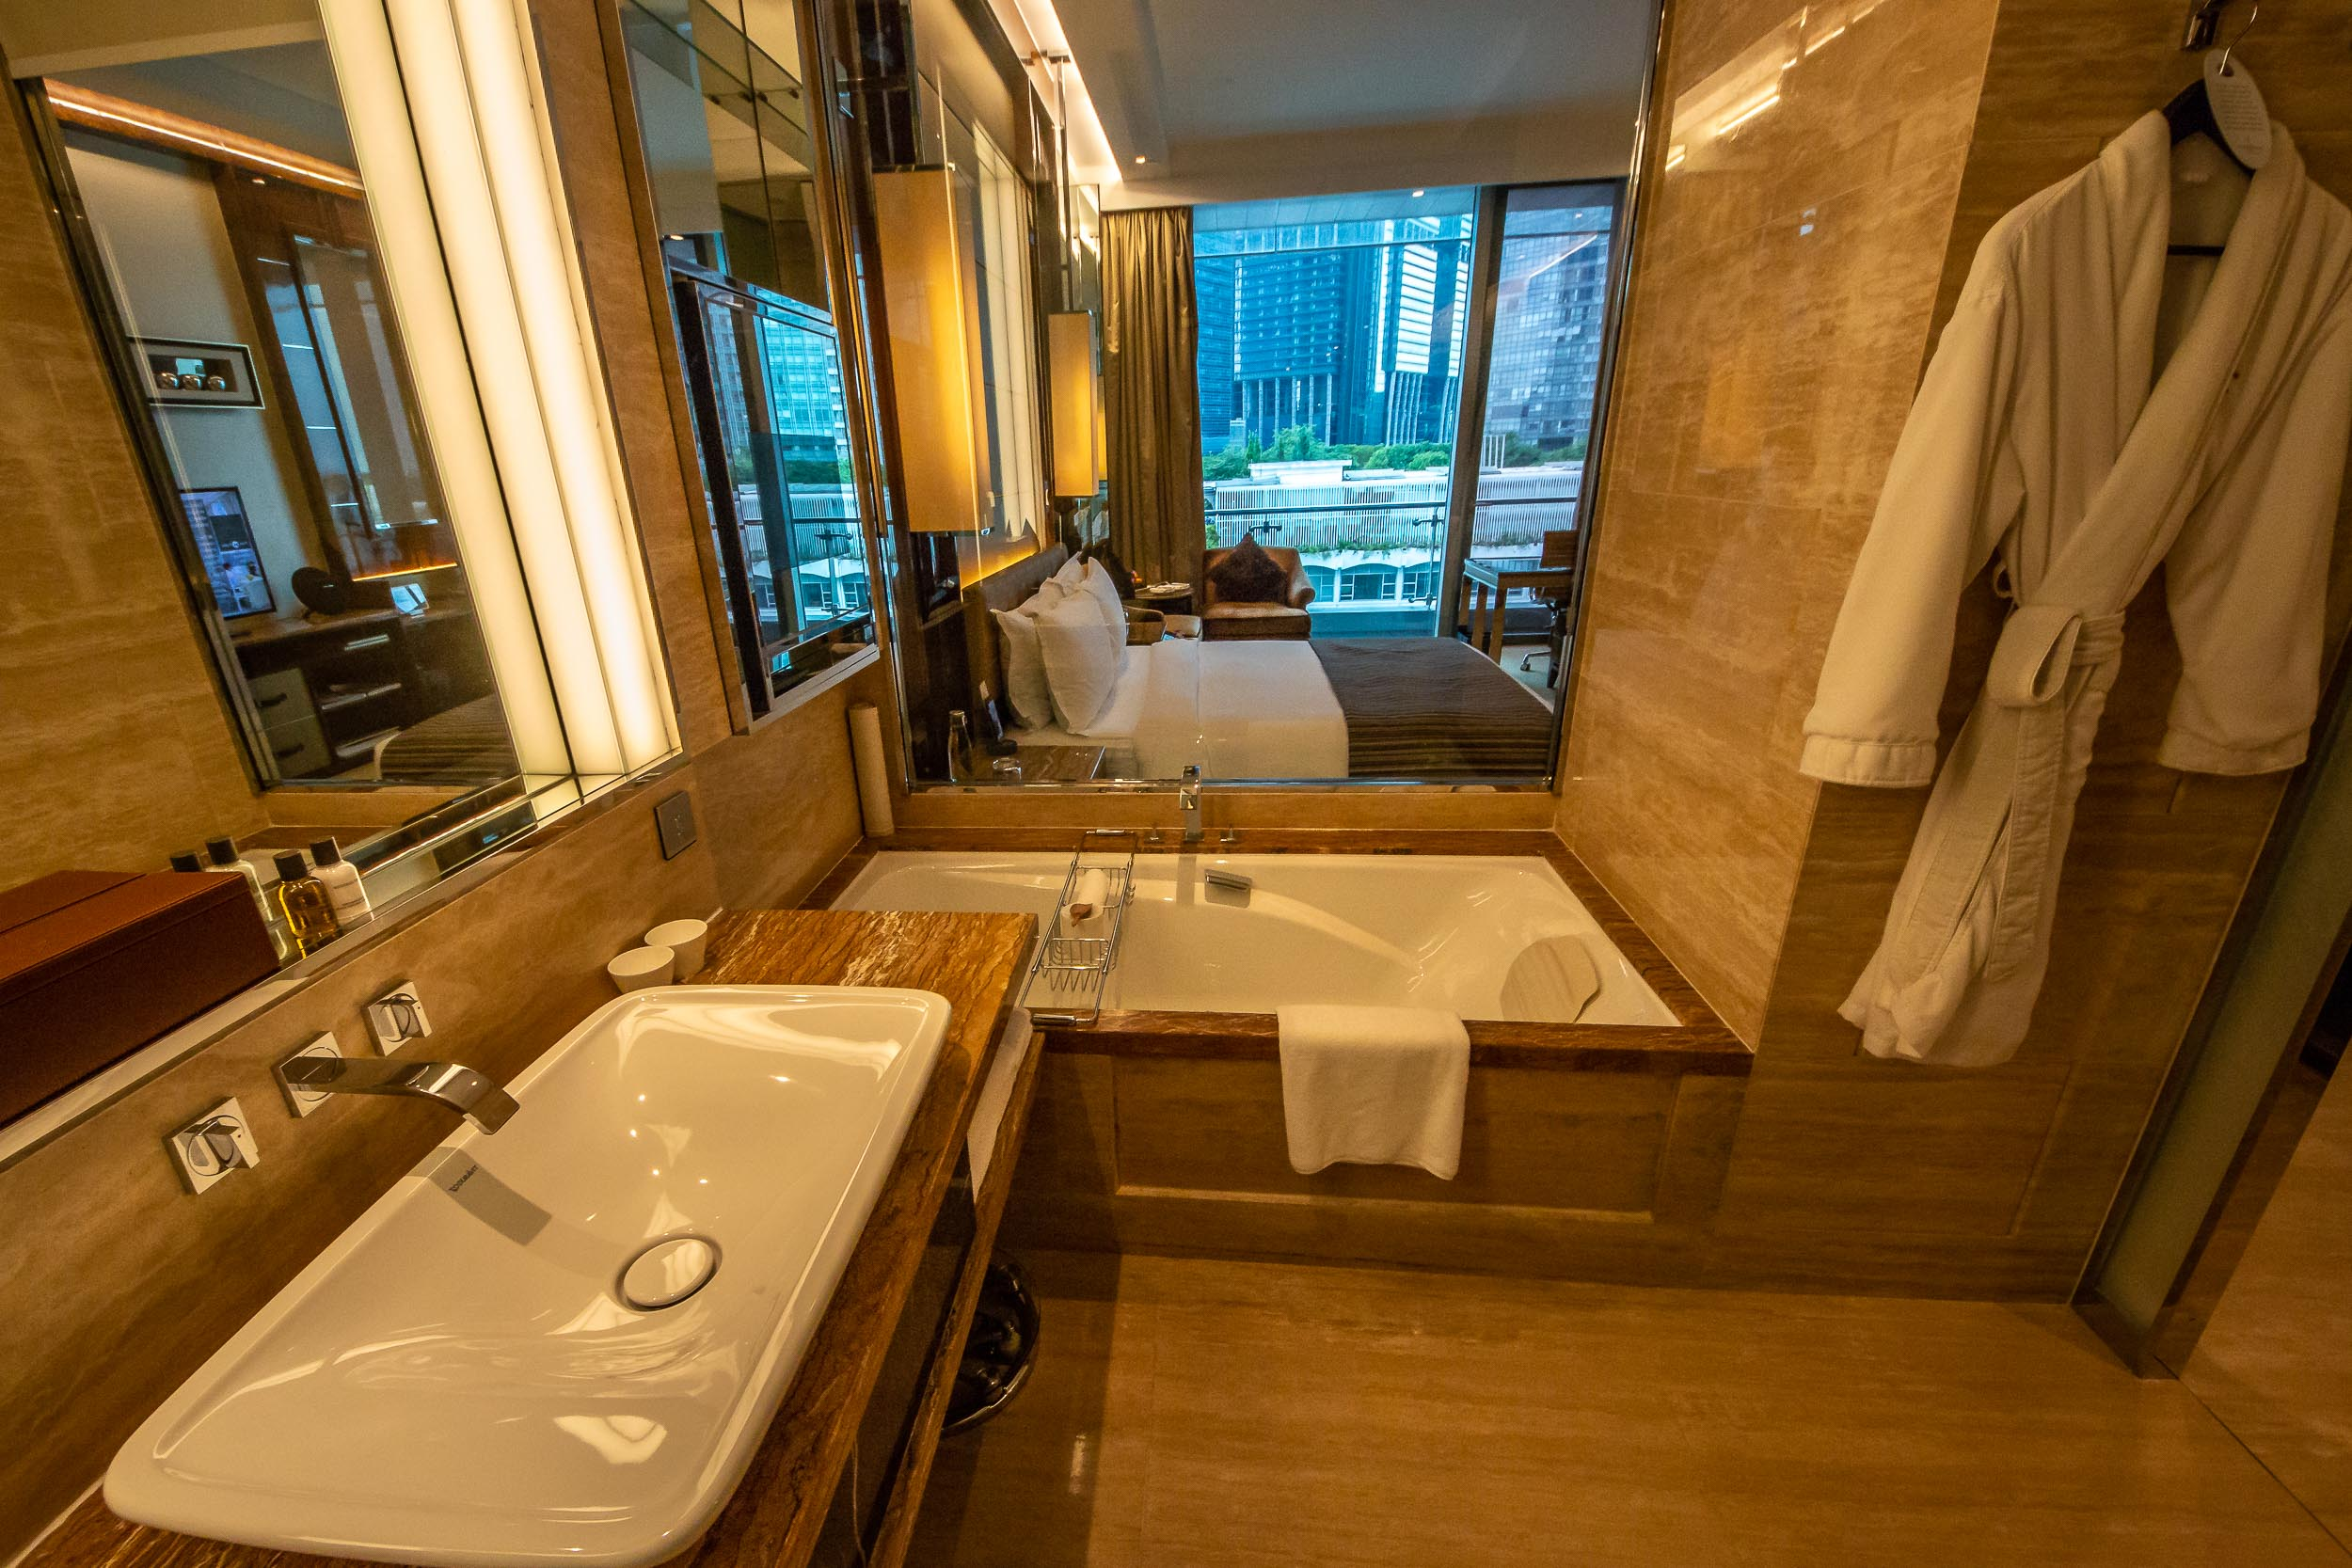 Bathroom with a view, Fullerton Bay Hotel, Singapore